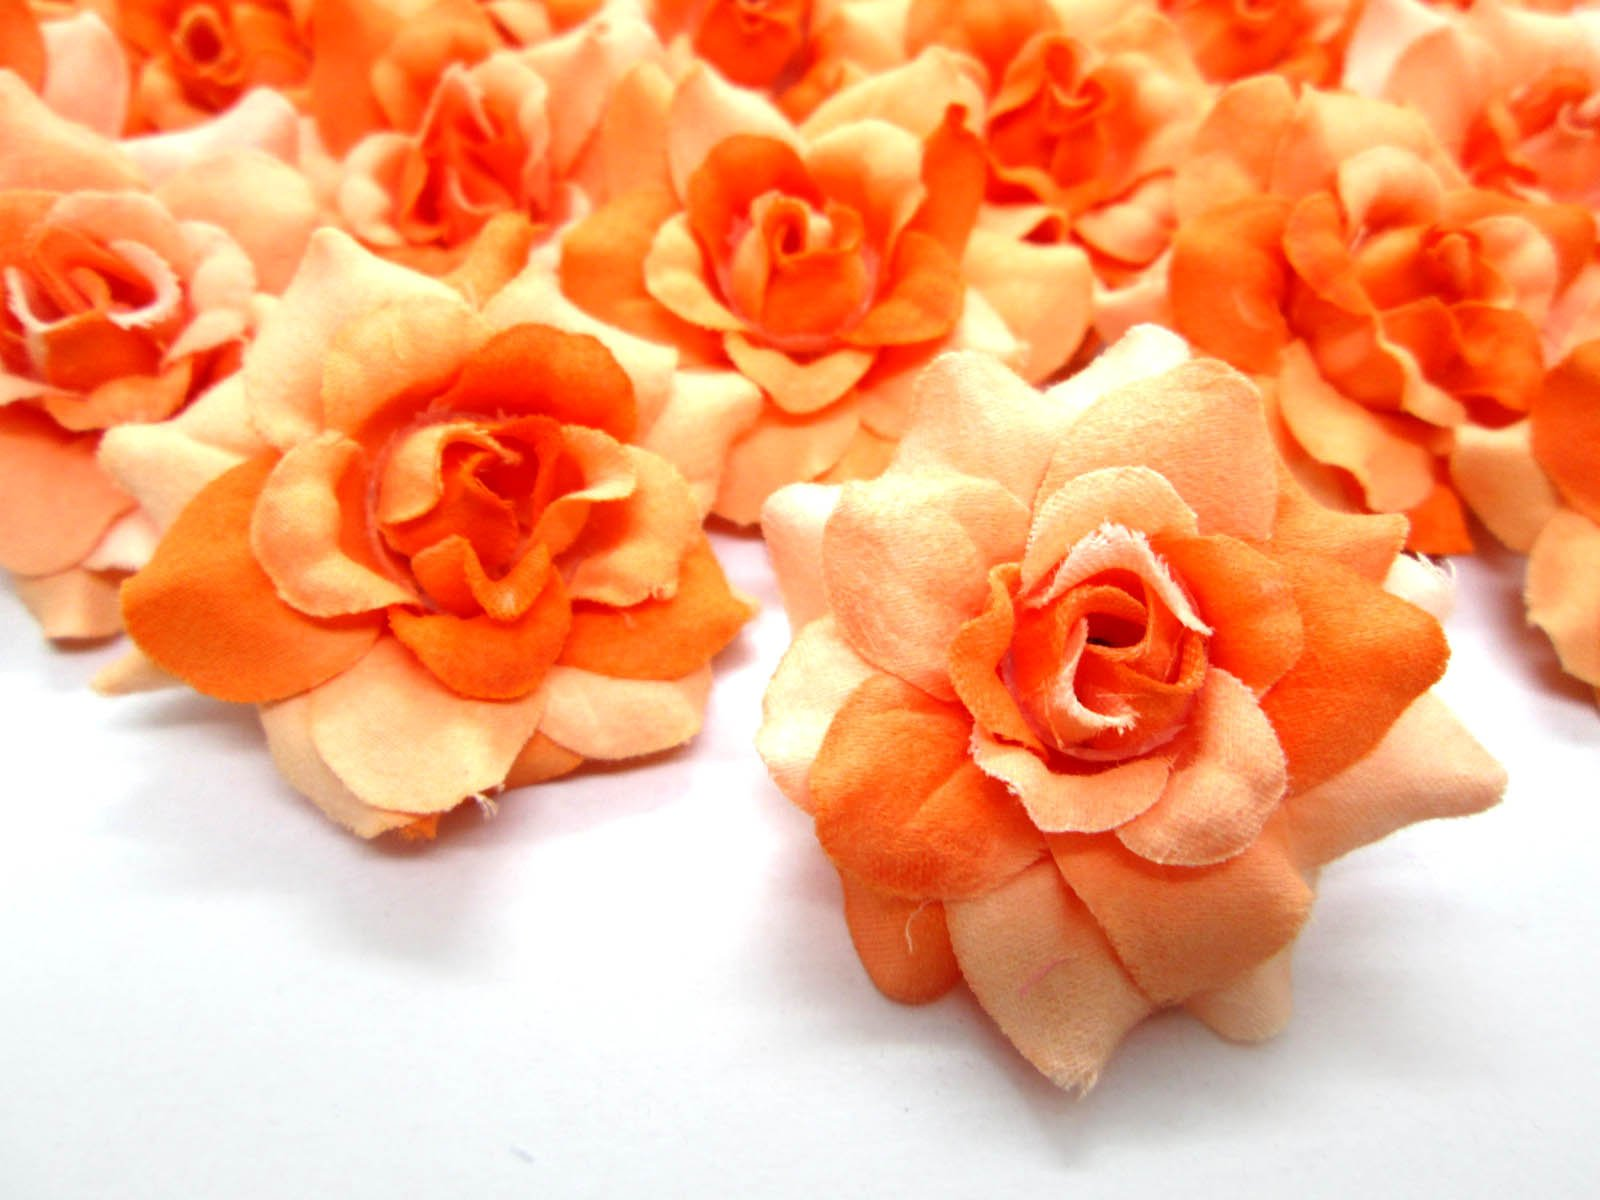 24-Silk-Two-tone-Orange-Roses-Flower-Head-175-Artificial-Flowers-Heads-Fabric-Floral-Supplies-Wholesale-Lot-for-Wedding-Flowers-Accessories-Make-Bridal-Hair-Clips-Headbands-Dress